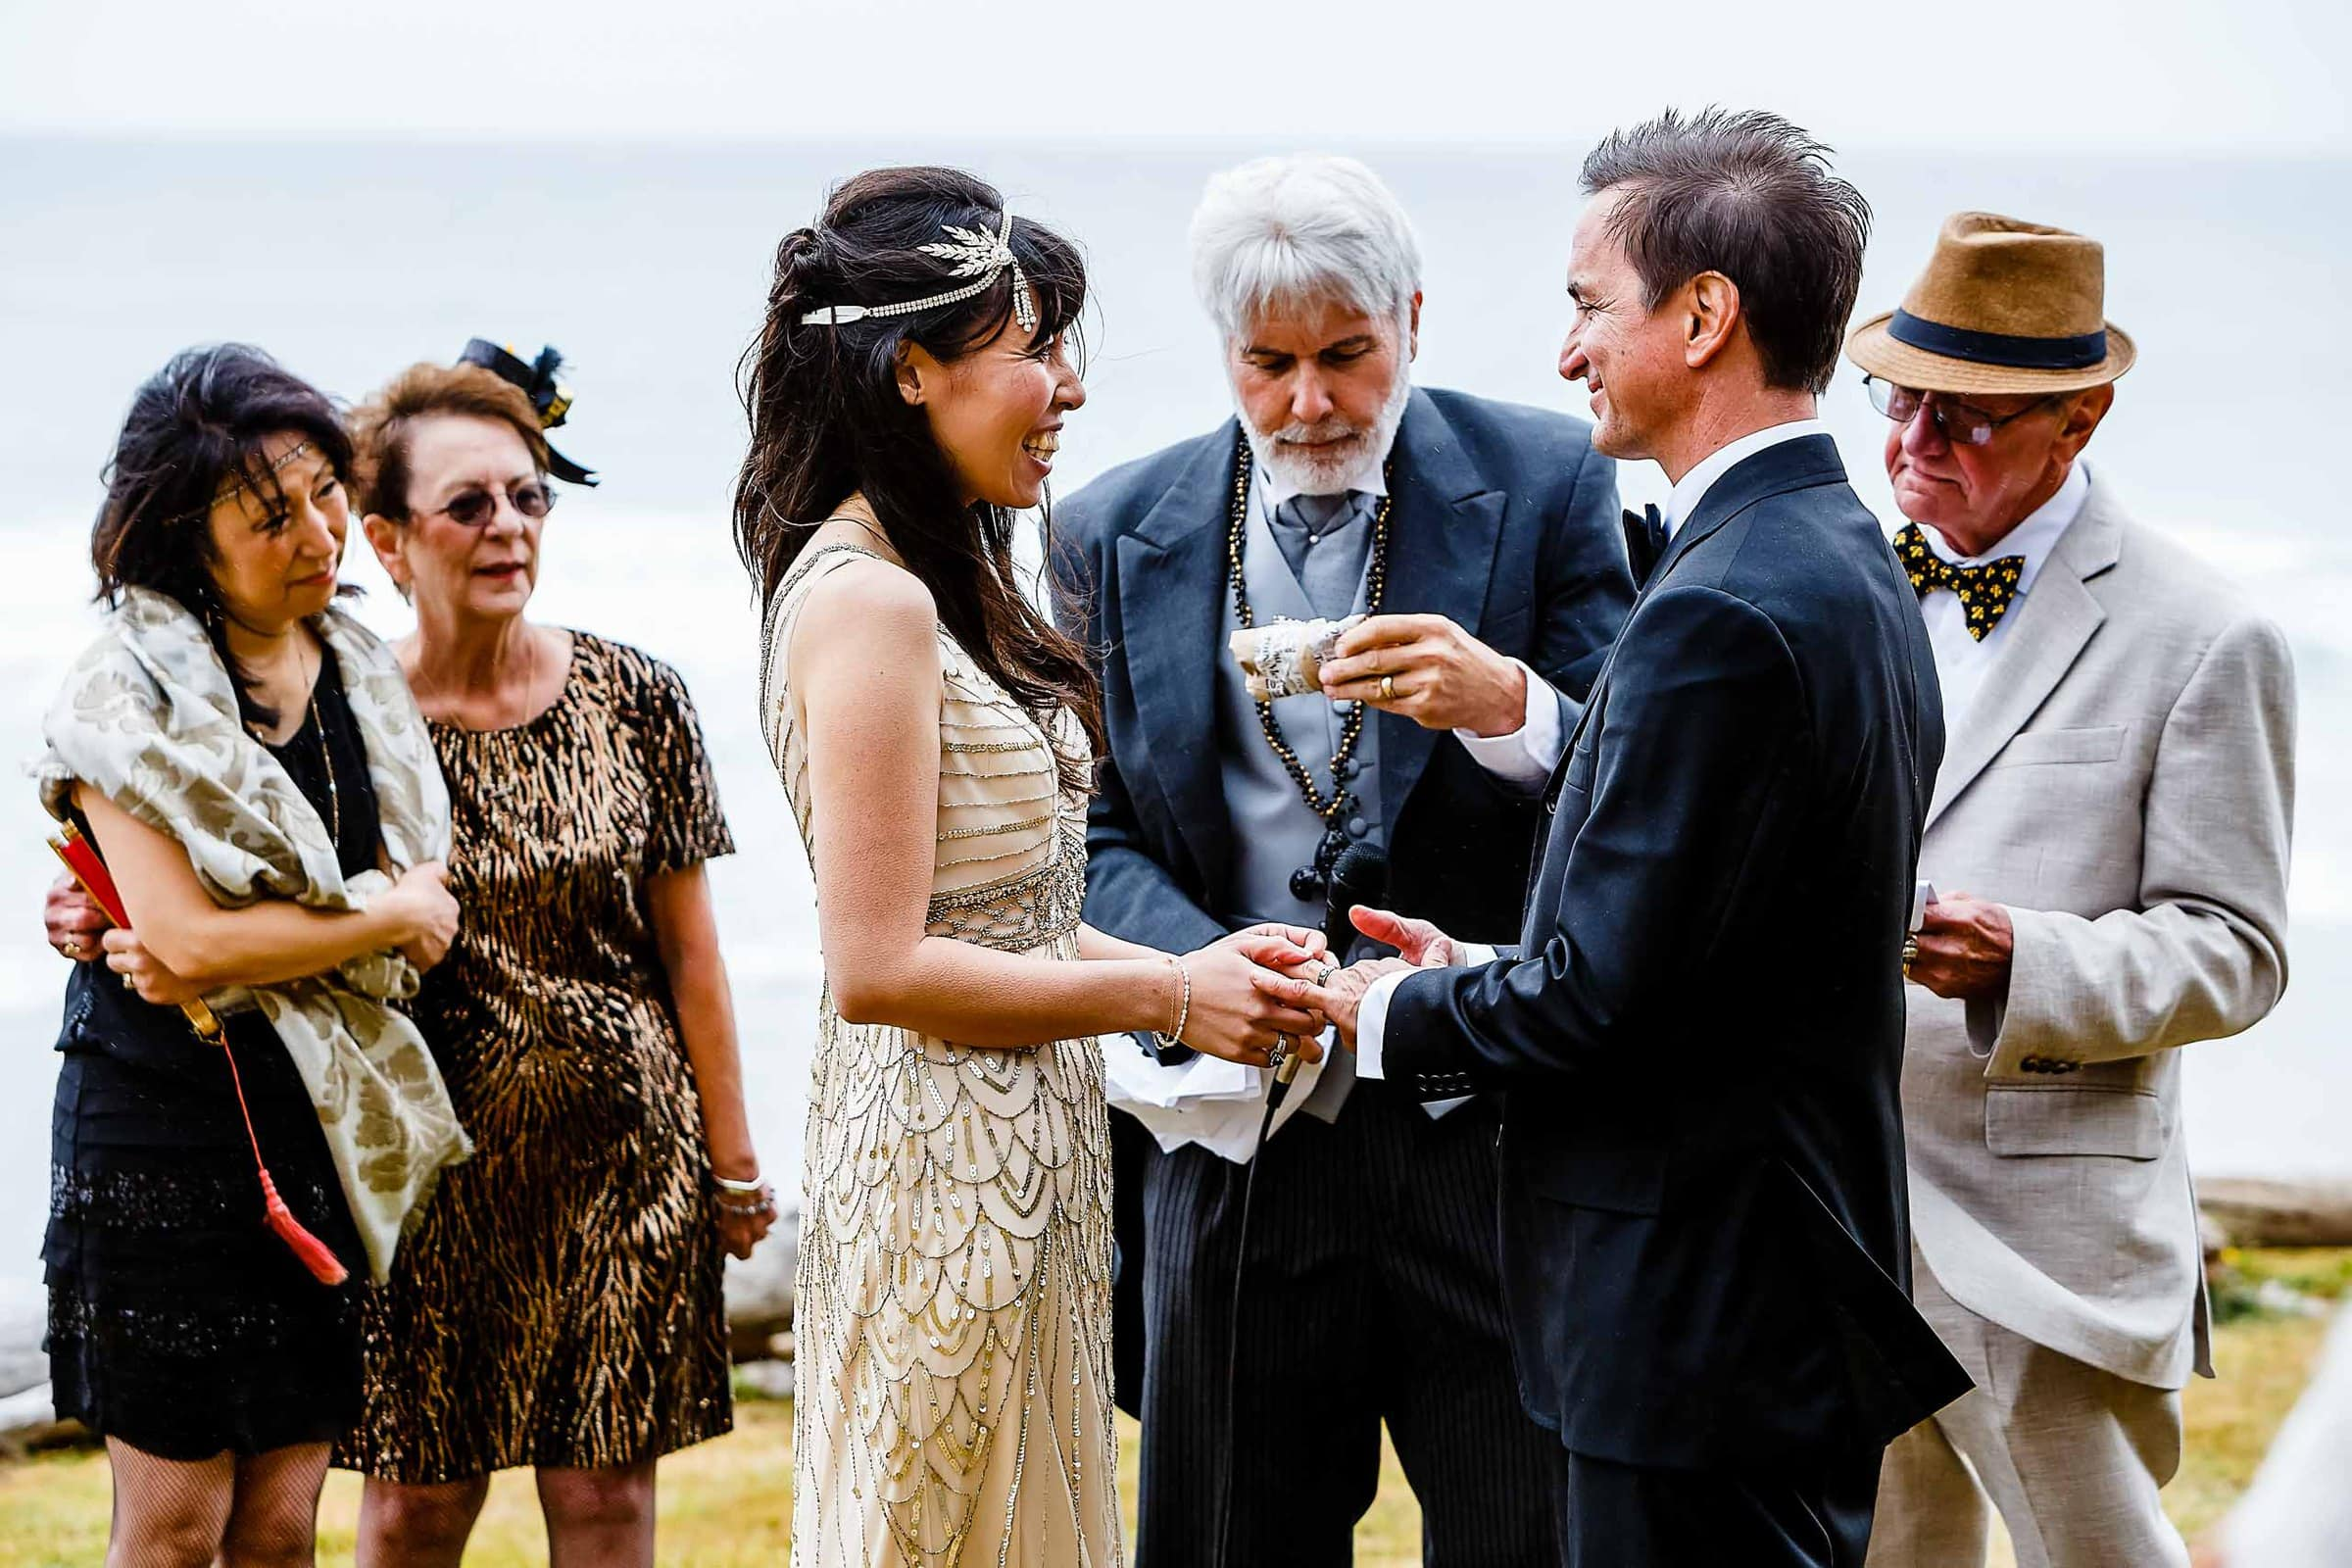 Bride and groom exchanging vows during their Manzanita elopement ceremony in Oregon